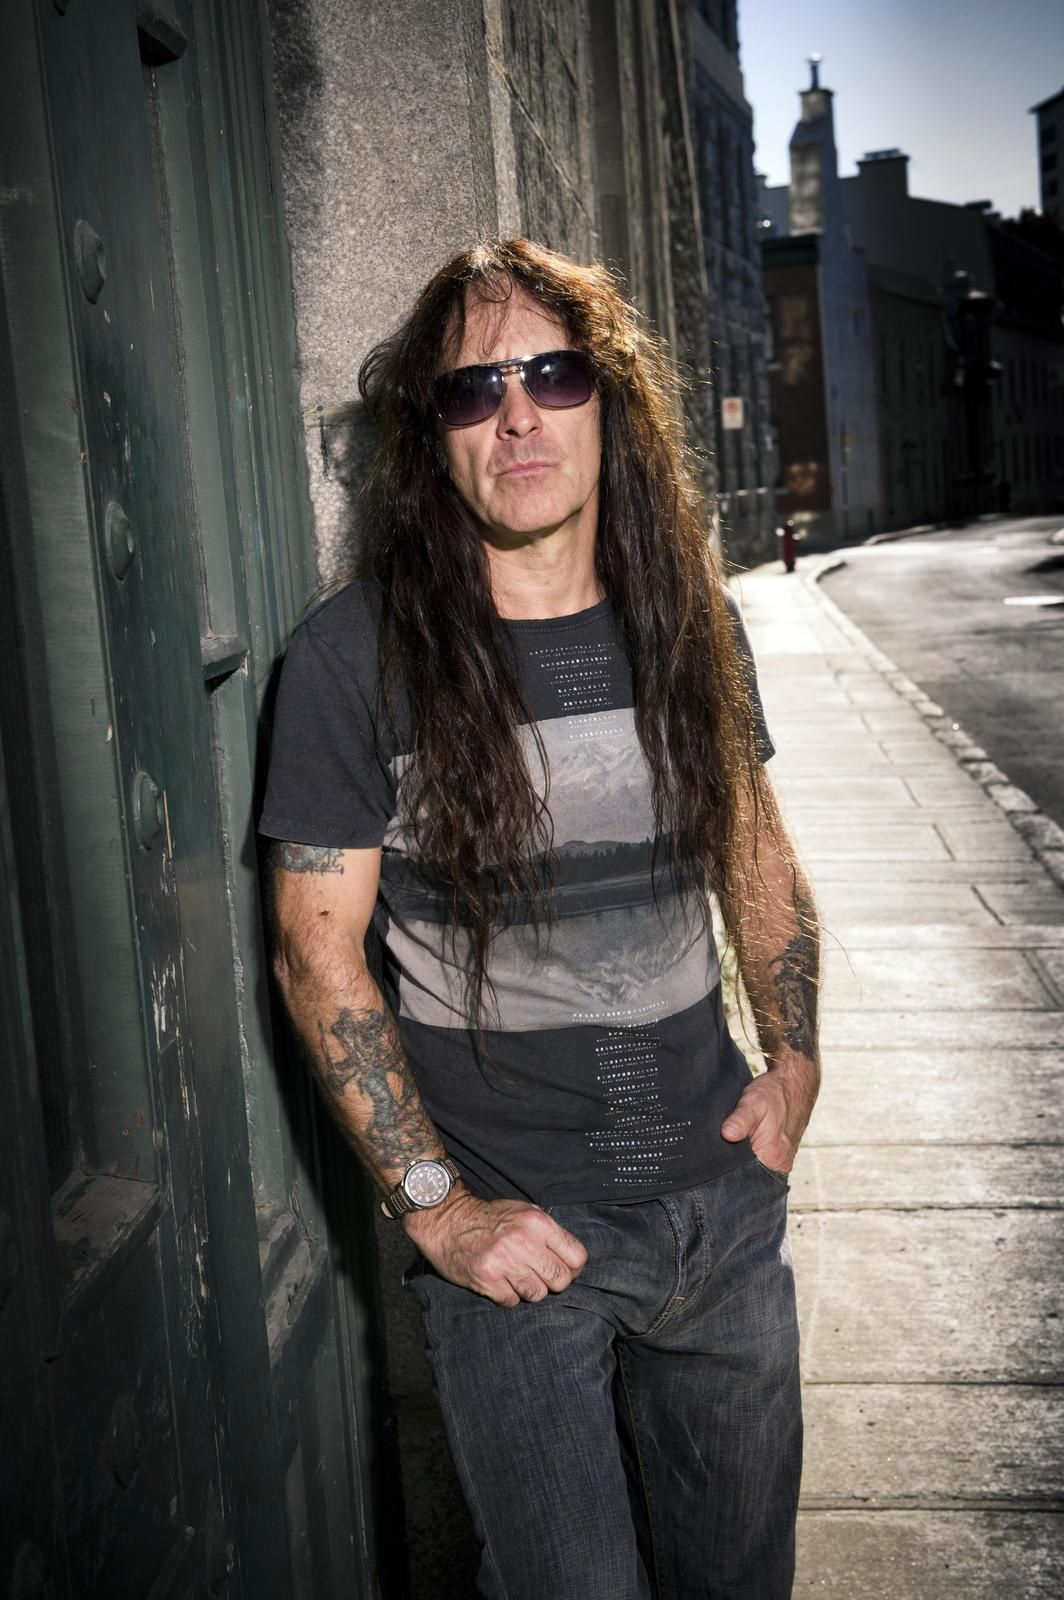 Steve Harris, bassist and founding member of Iron Maiden - Photo: John McMurtrie/EMI